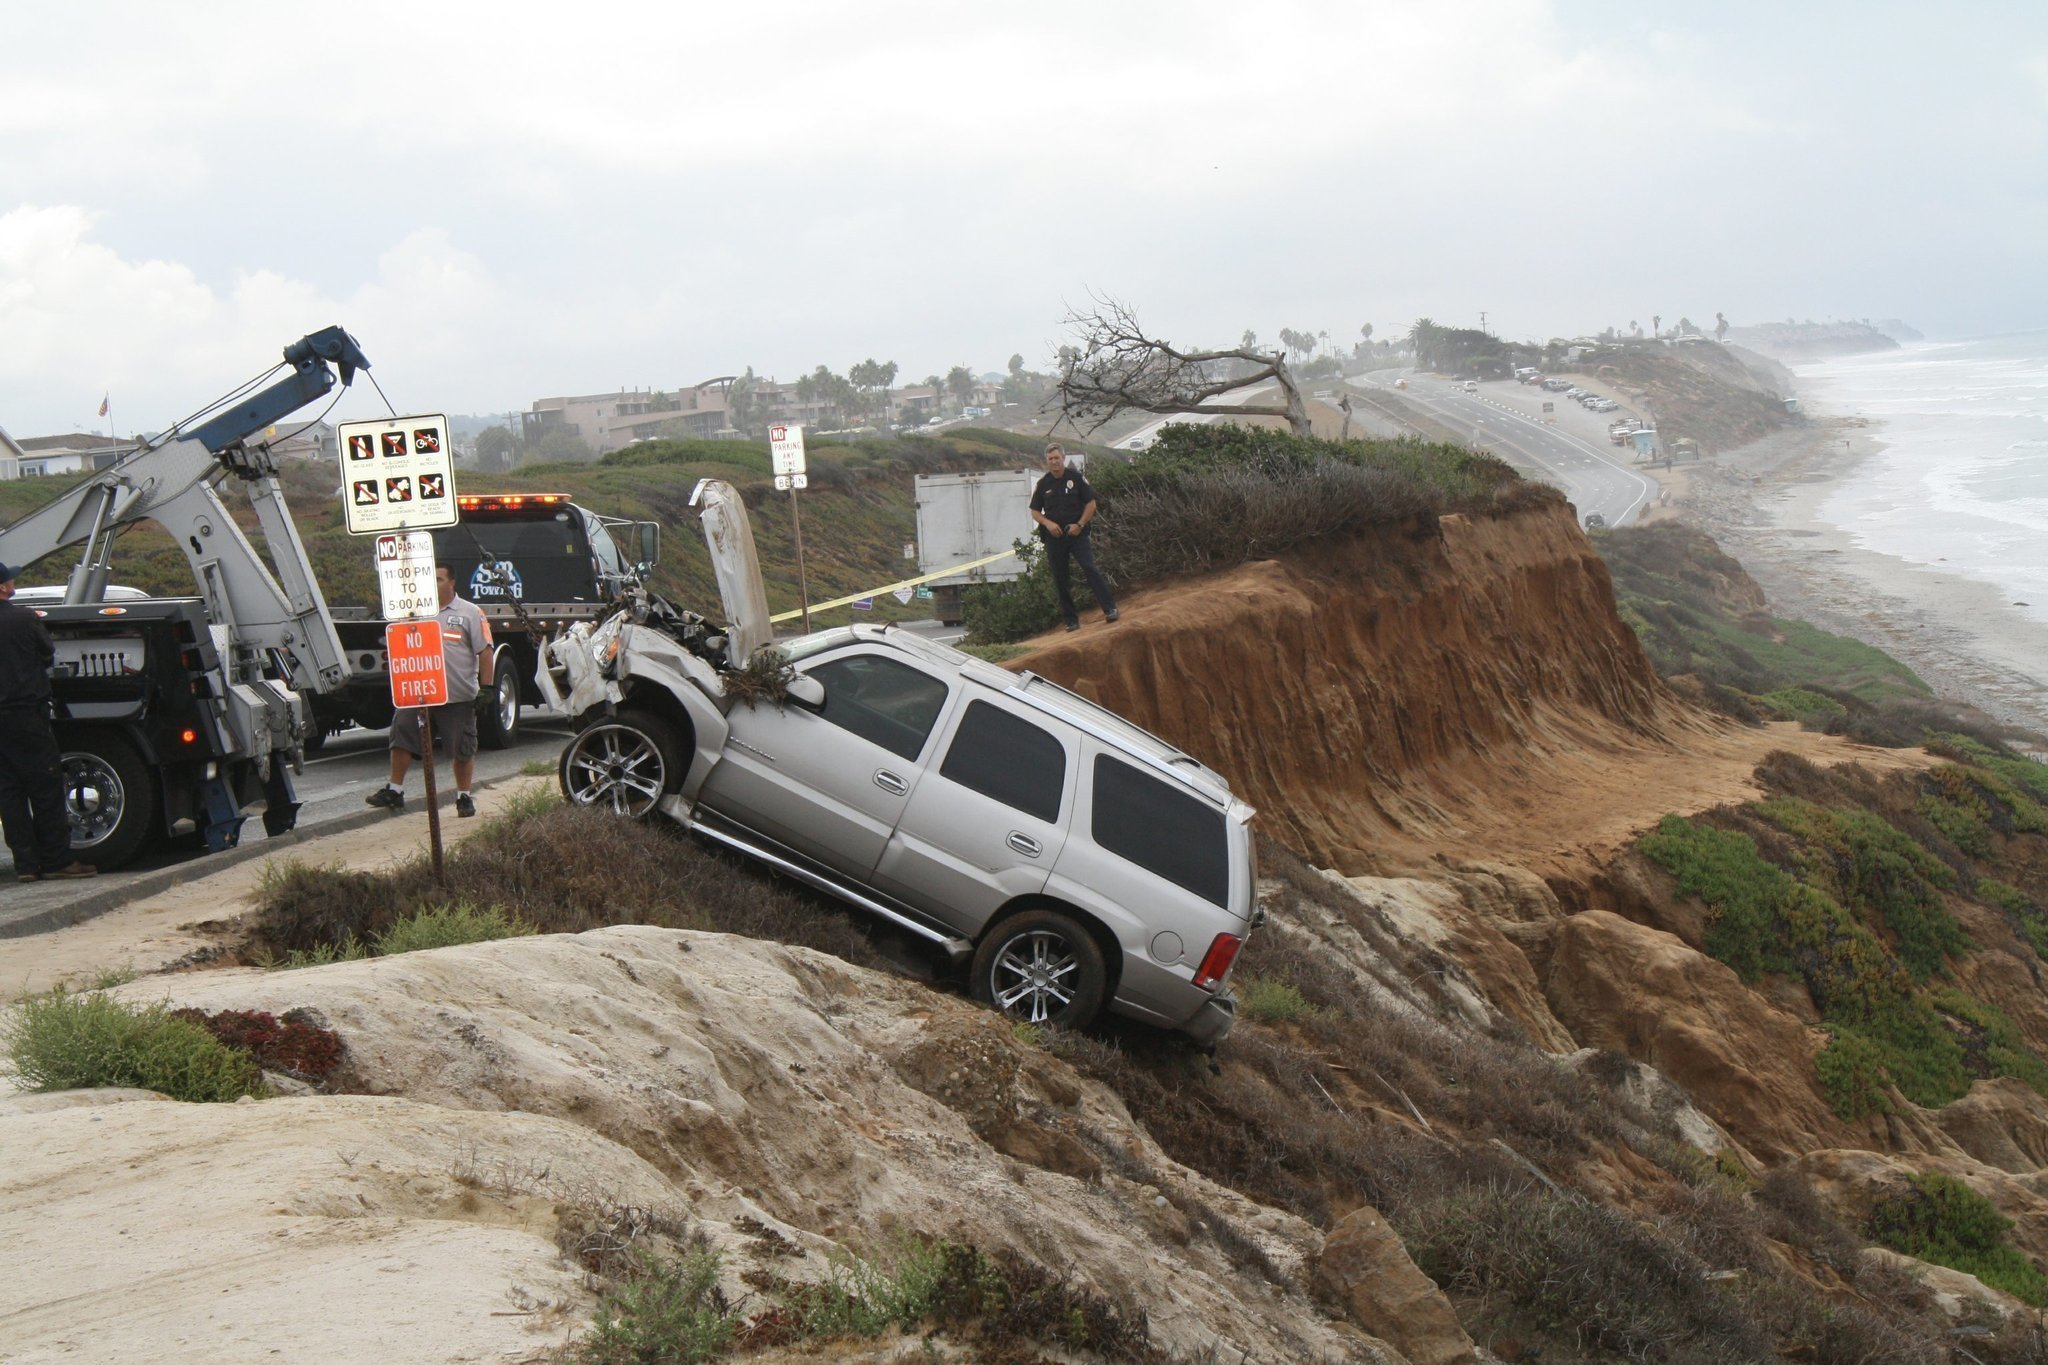 Junior Seau Injured After Car Plunges Off Cliff In Carlsbad The